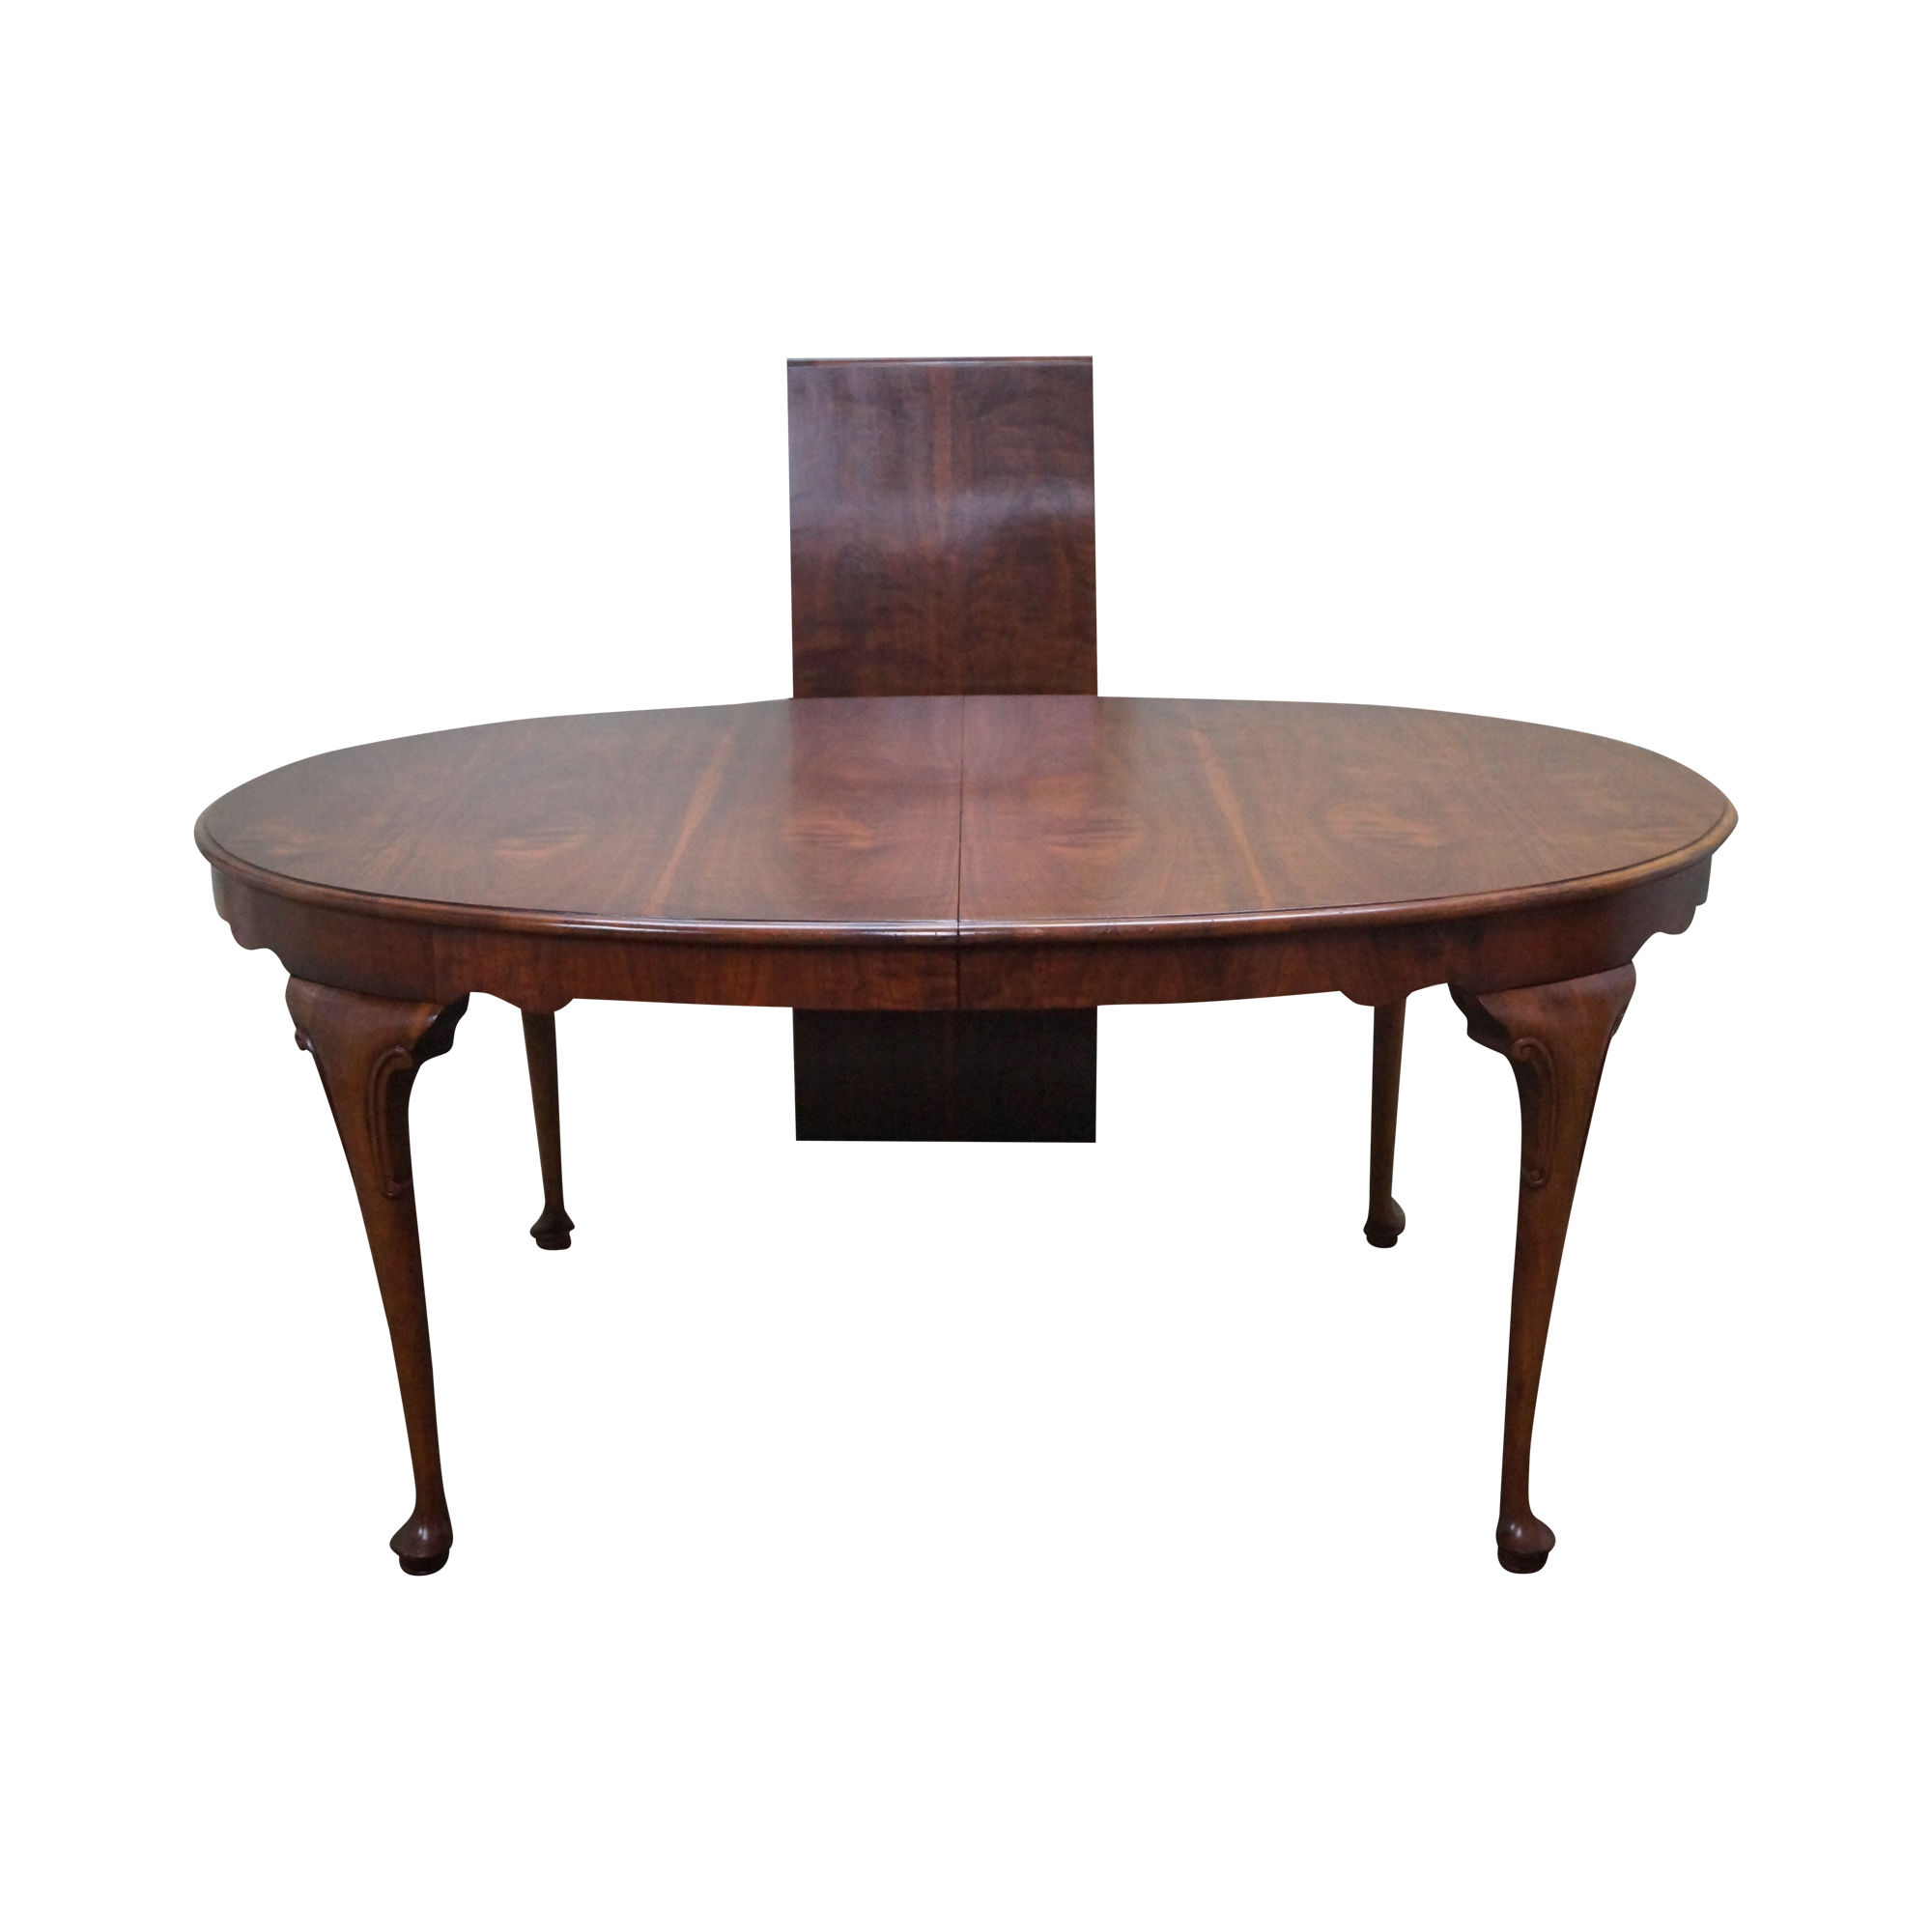 baker milling road walnut queen anne dining table chairish. Black Bedroom Furniture Sets. Home Design Ideas